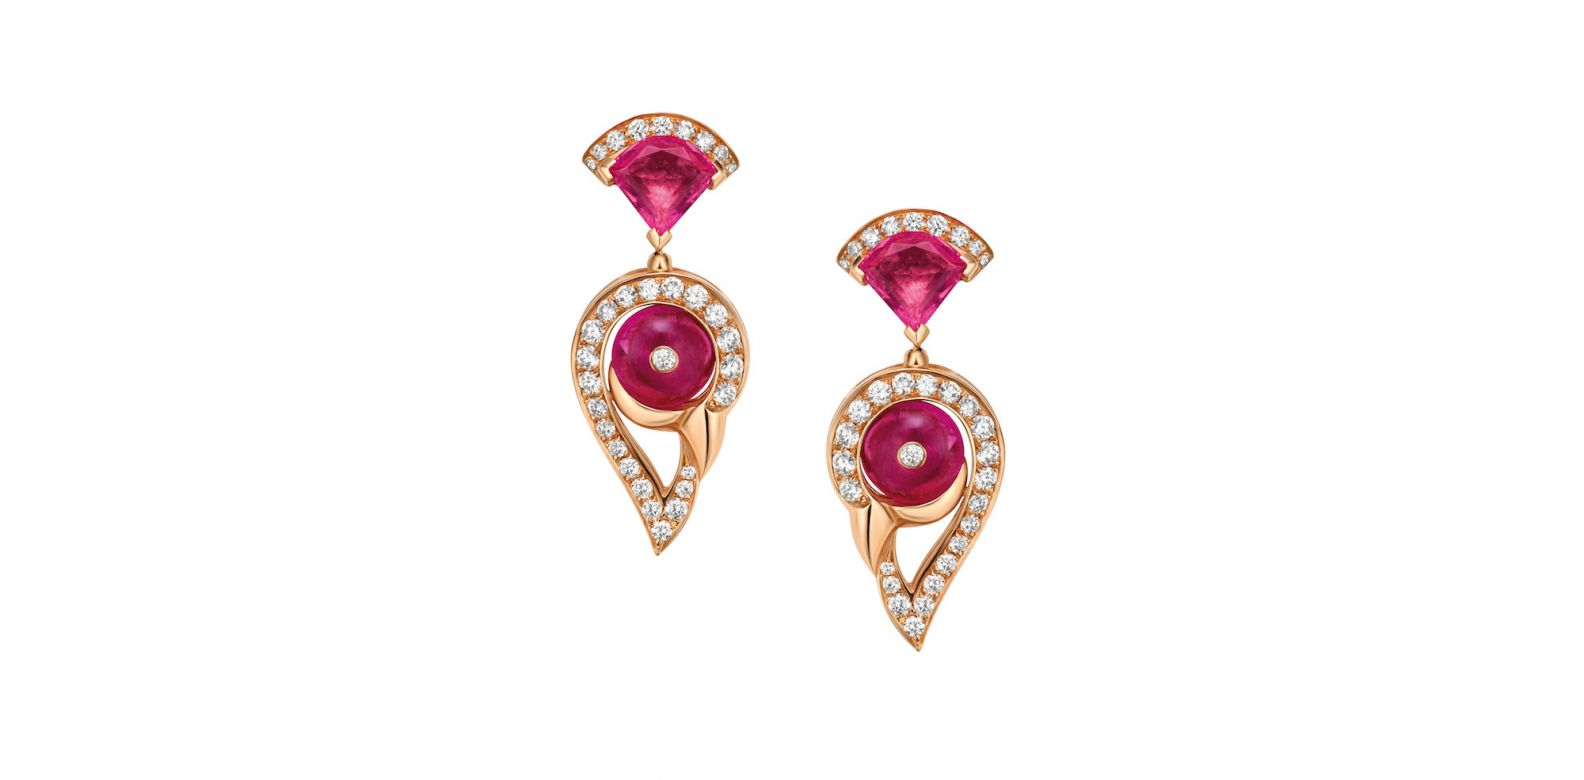 Earrings in pink gold with rubellite and diamonds (0.61ct)